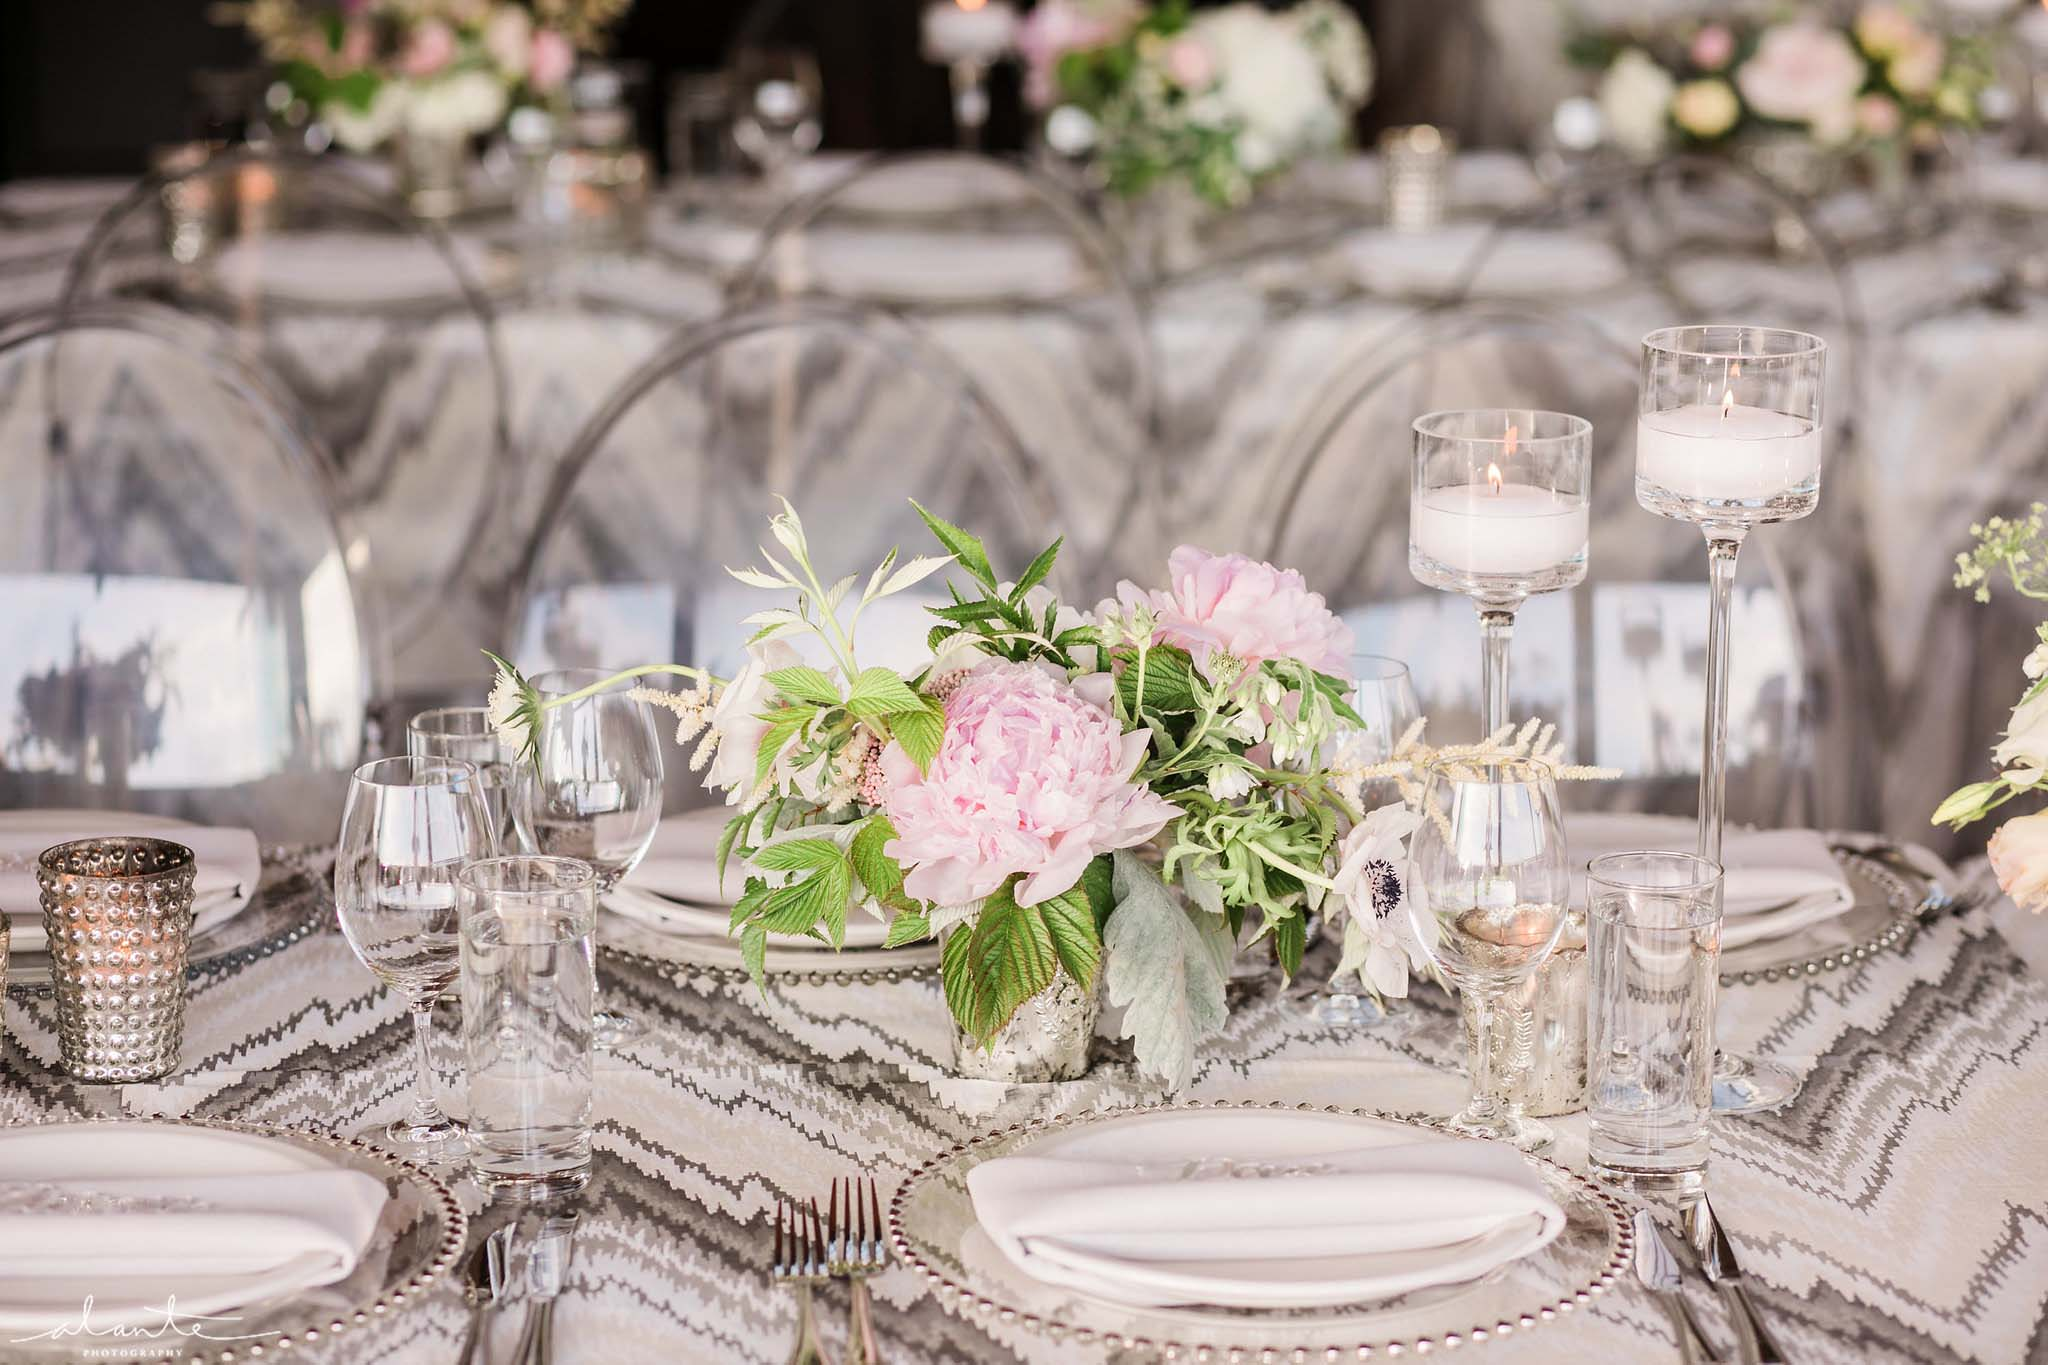 Long reception tables with silver linens and pink centerpieces - Olympic Rooftop Pavilion wedding with pink peonies by Flora Nova Design Seattle